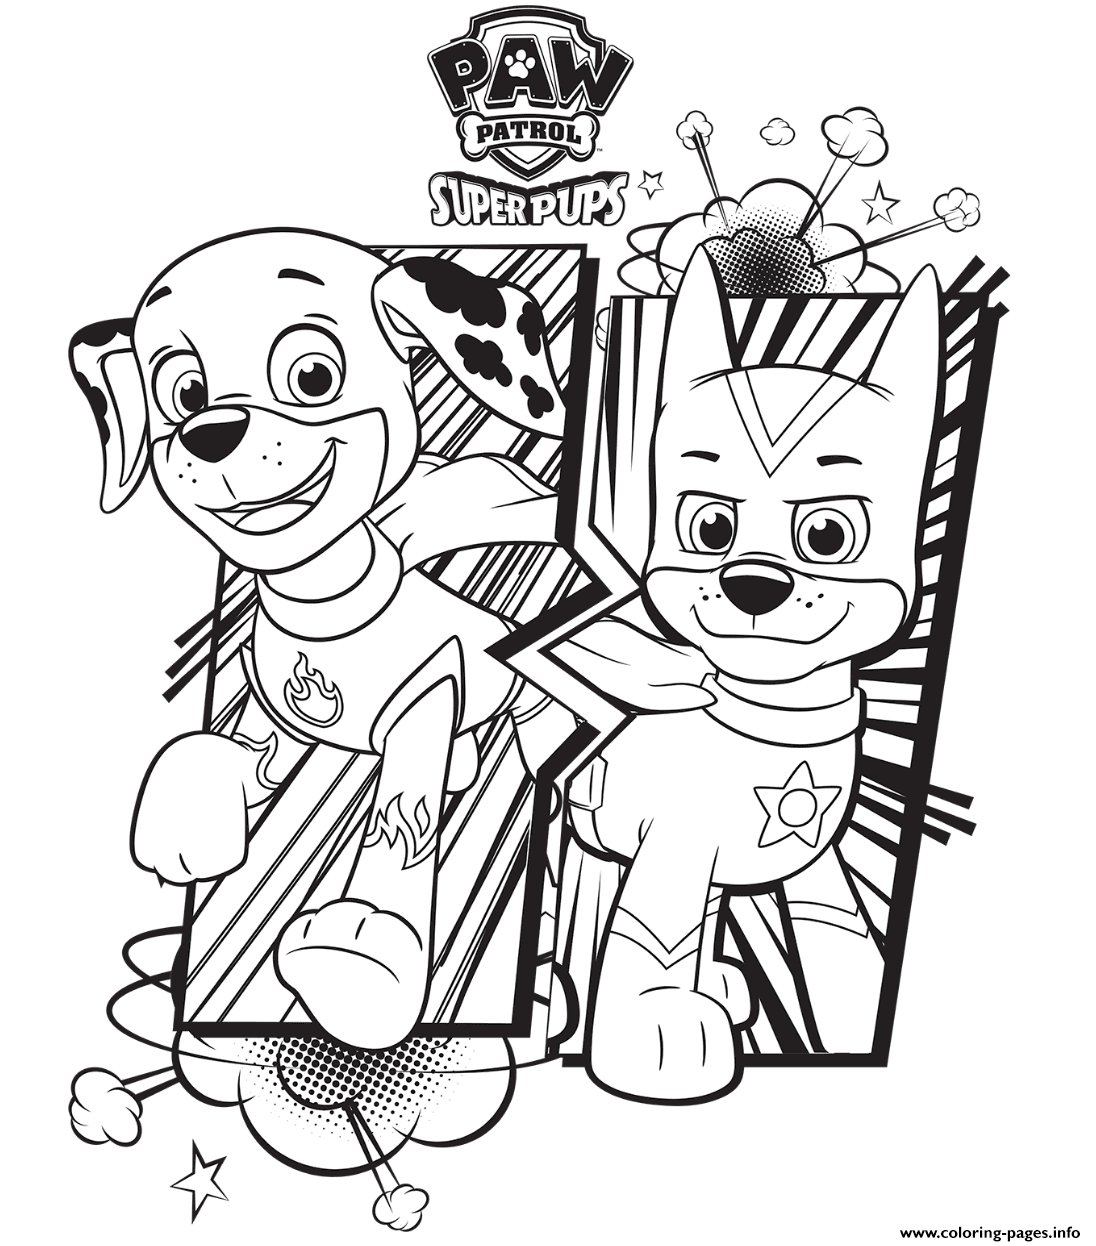 Paw Patrol Super Pups Coloring Pages